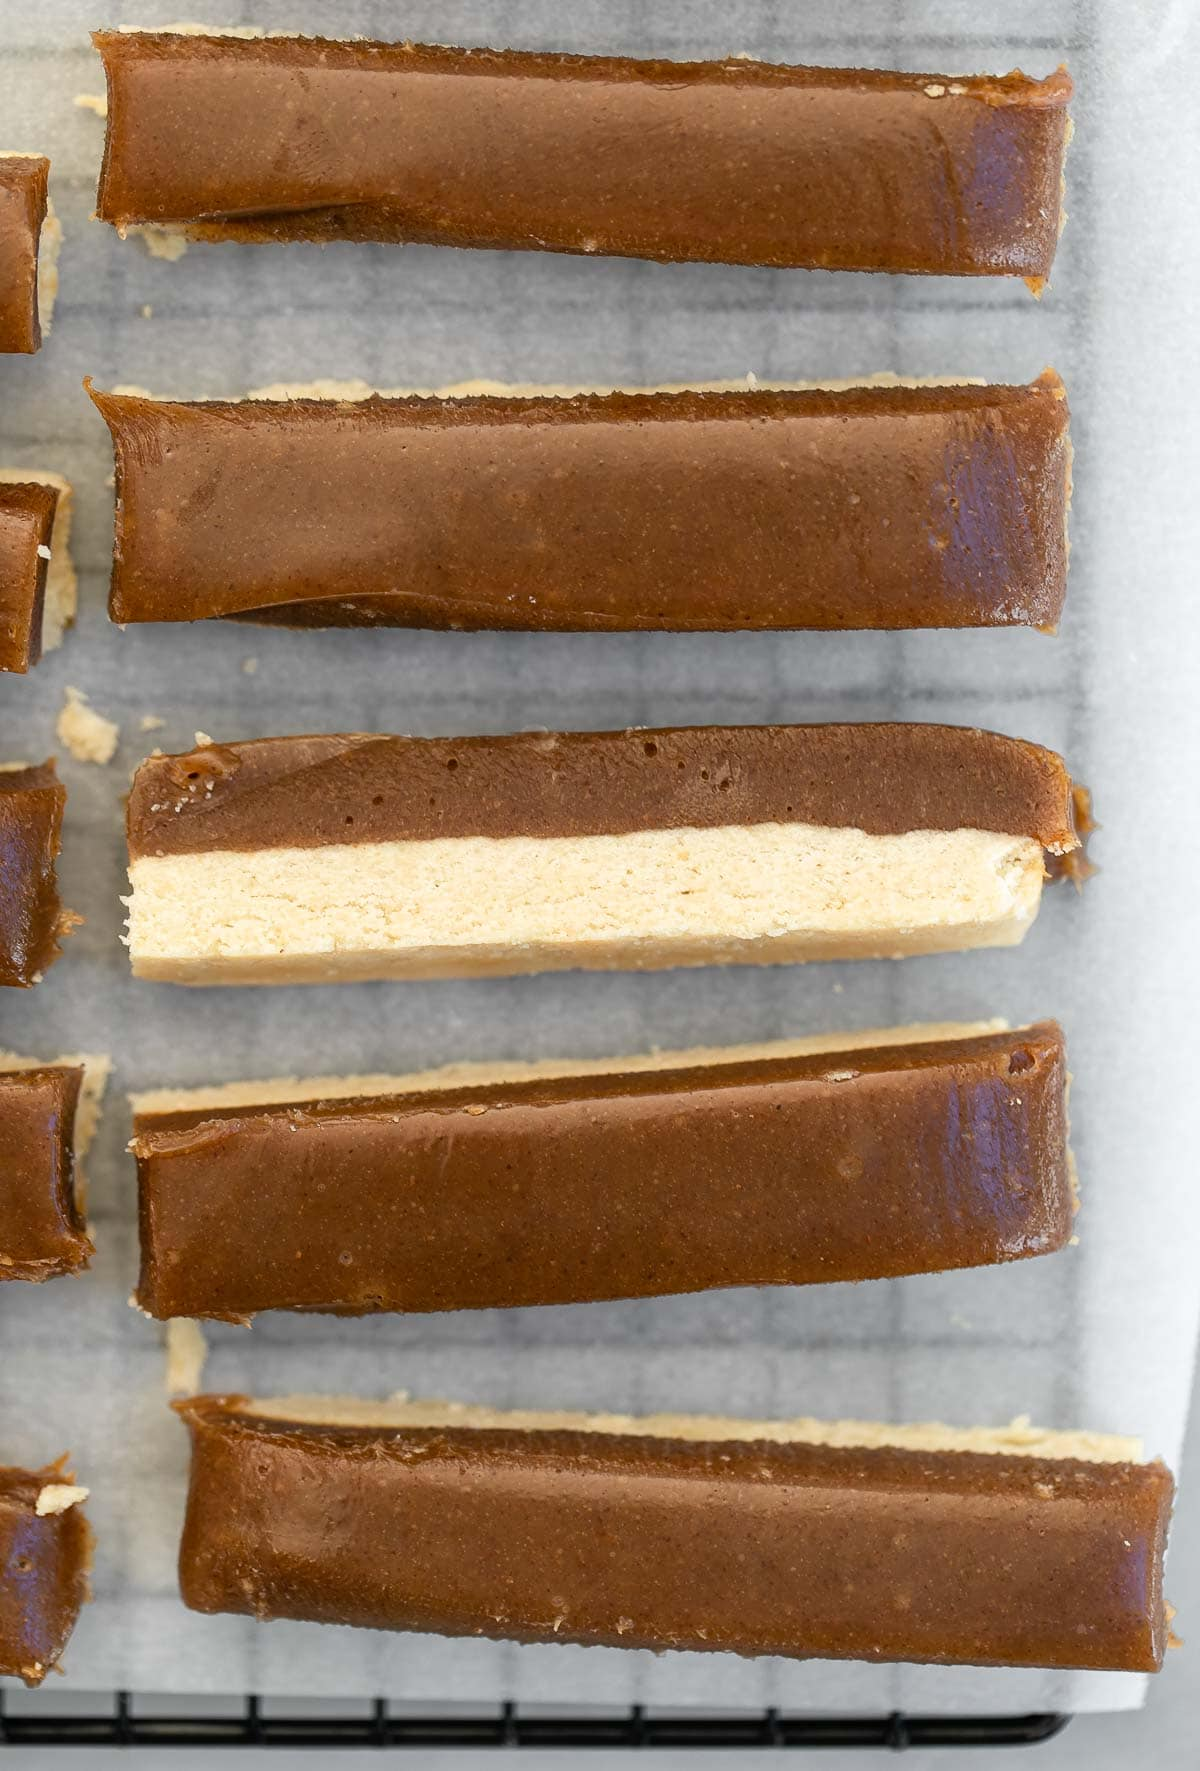 Shortbread and caramel layer after setting.